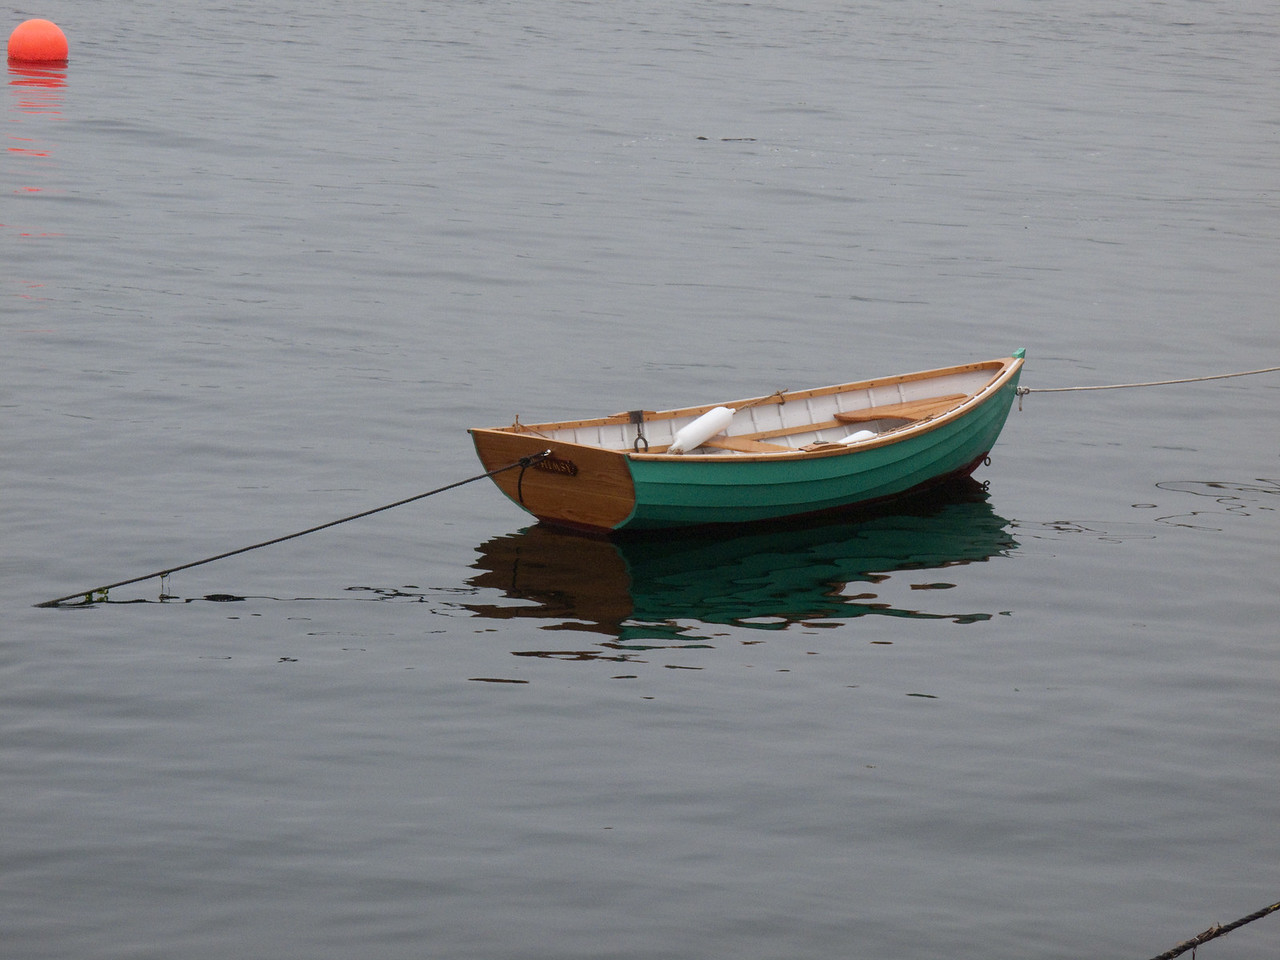 Lone dingy at the edge of the fog